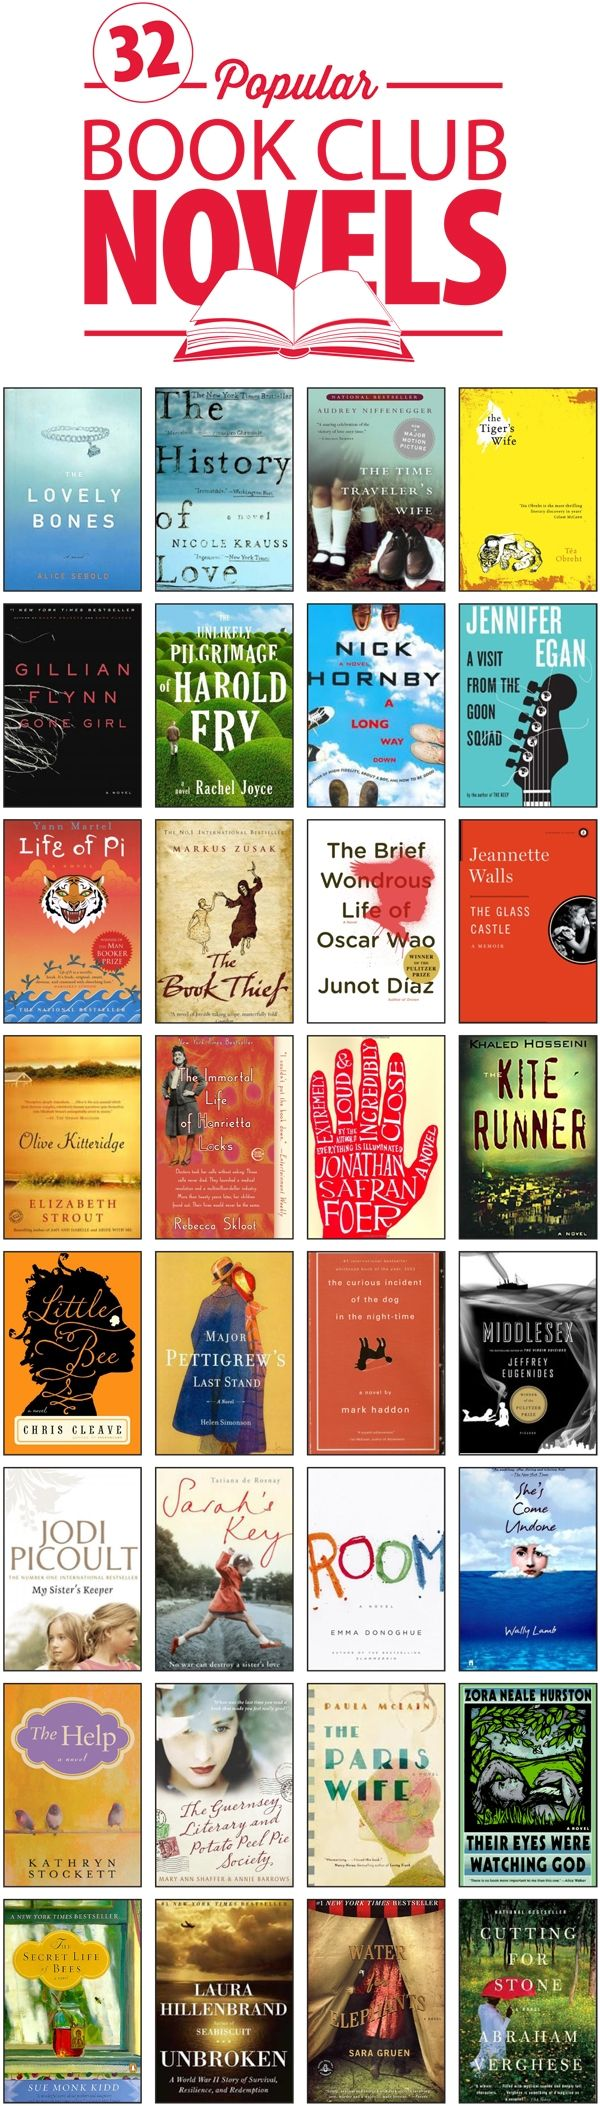 In case you are looking for some books to read over the summer, here is a list of 32 popular book club books!